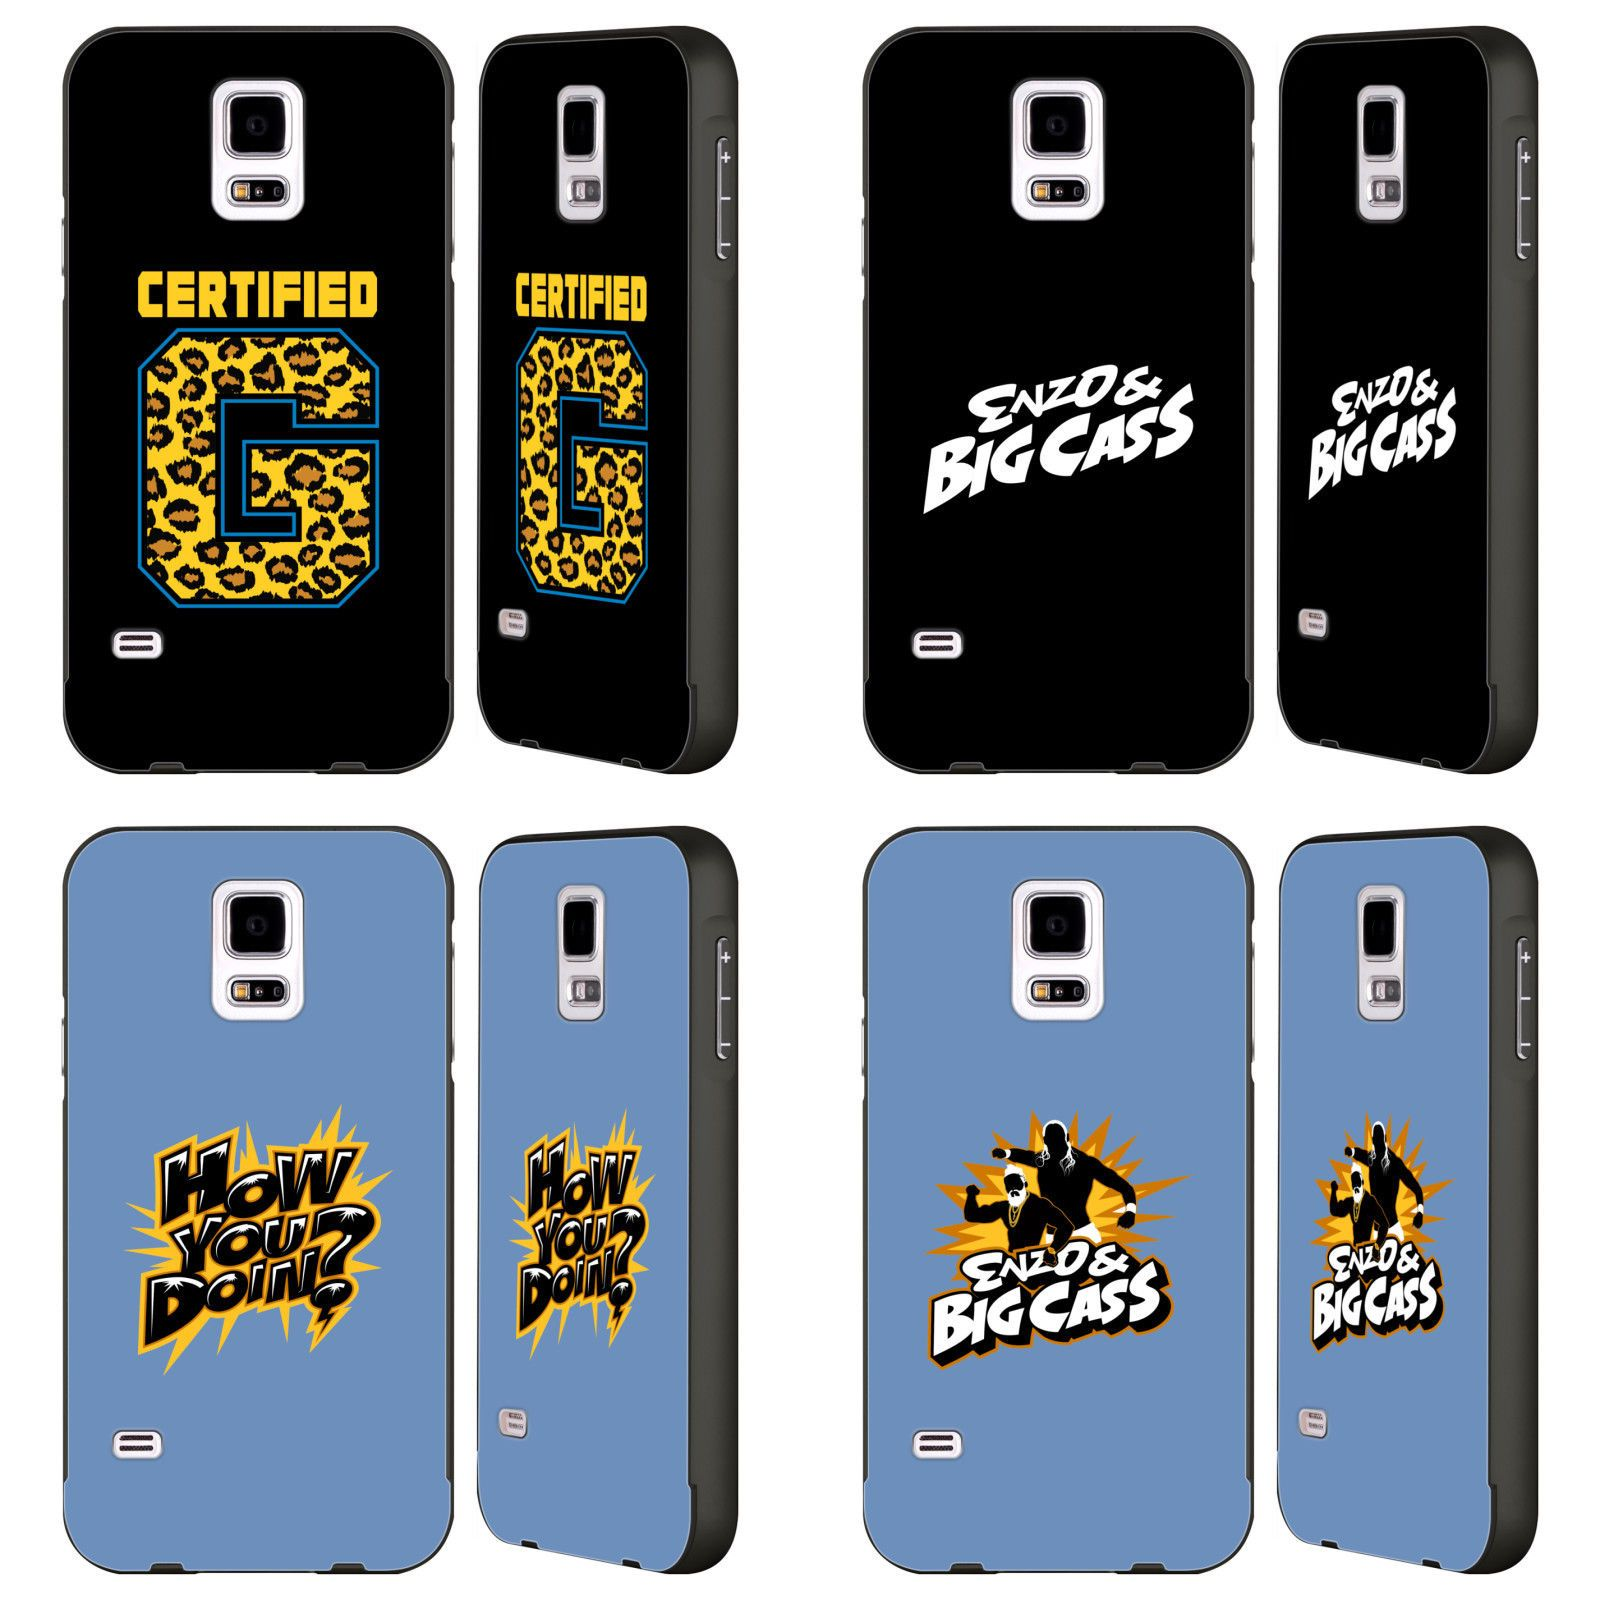 wwe phone case samsung galaxy s7 edge